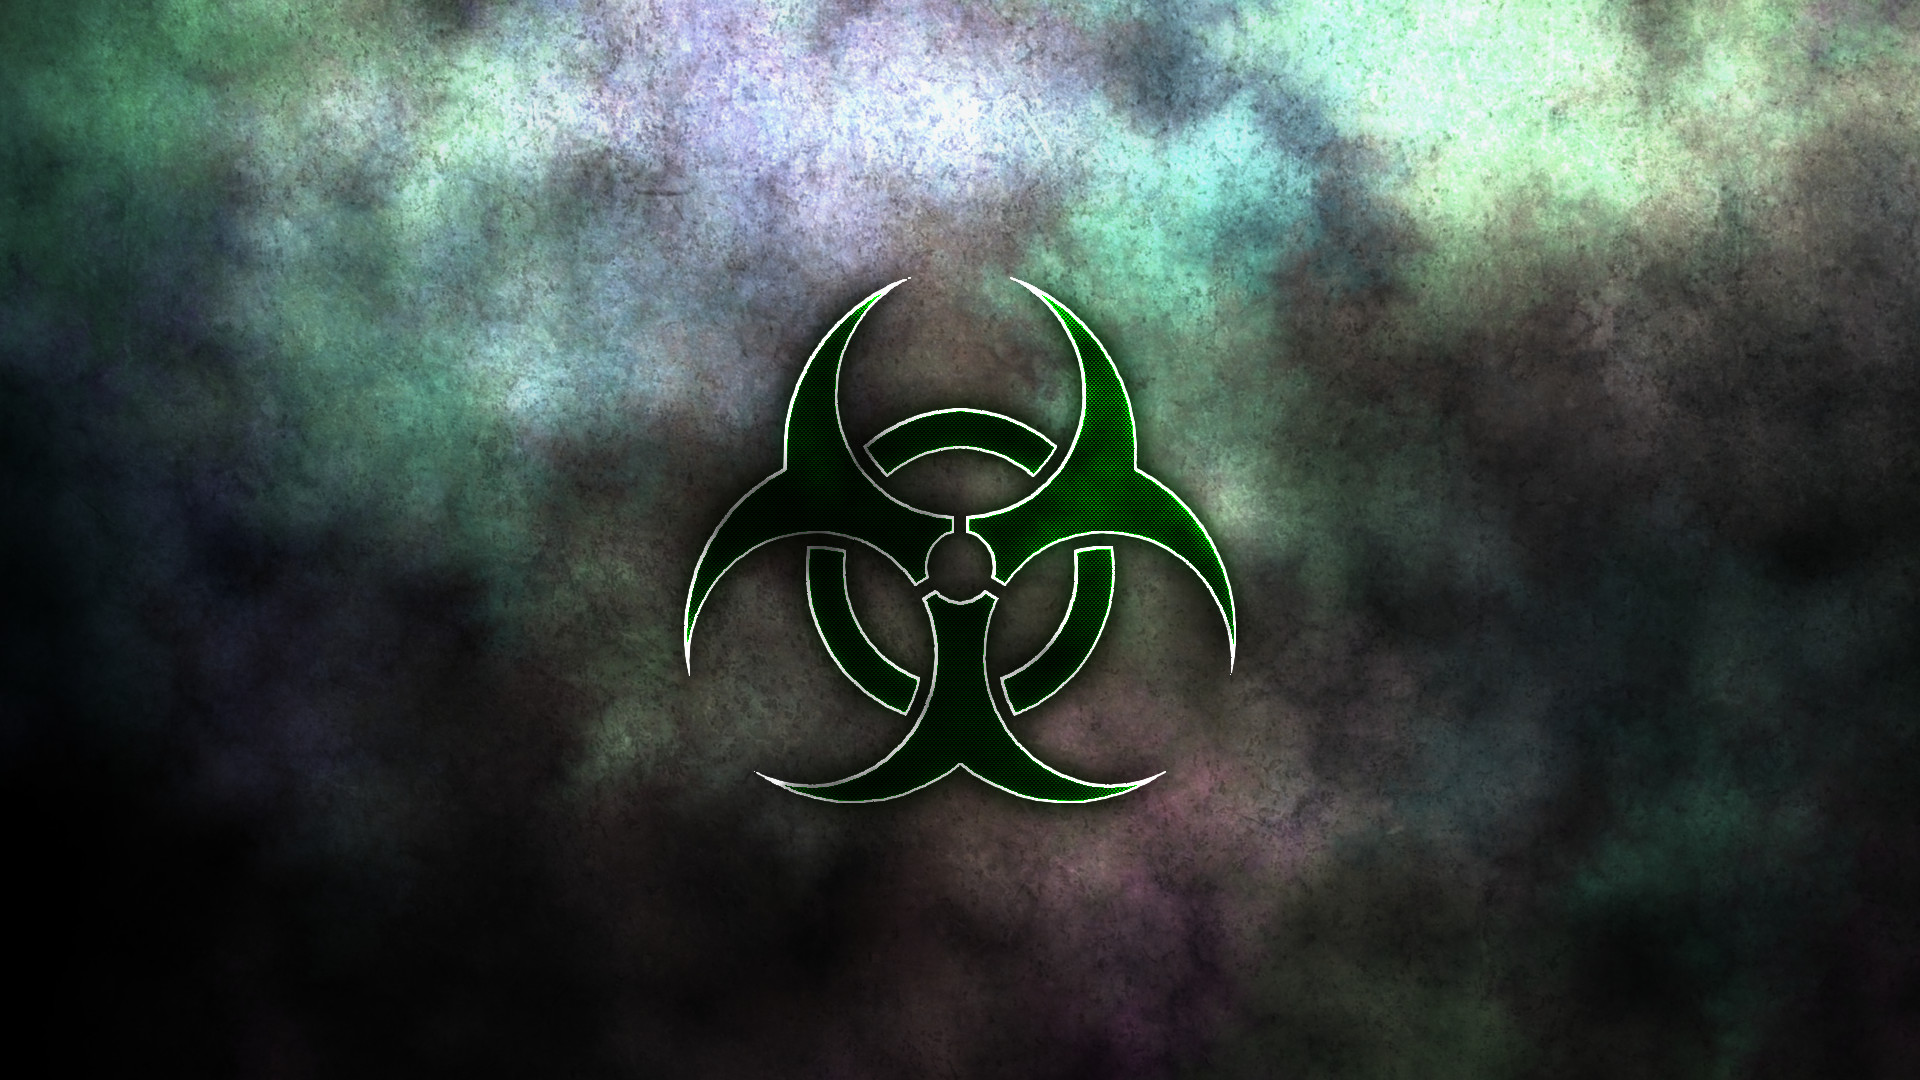 Res: 1920x1080, Biohazard Grunge by LordShenlong Biohazard Grunge by LordShenlong